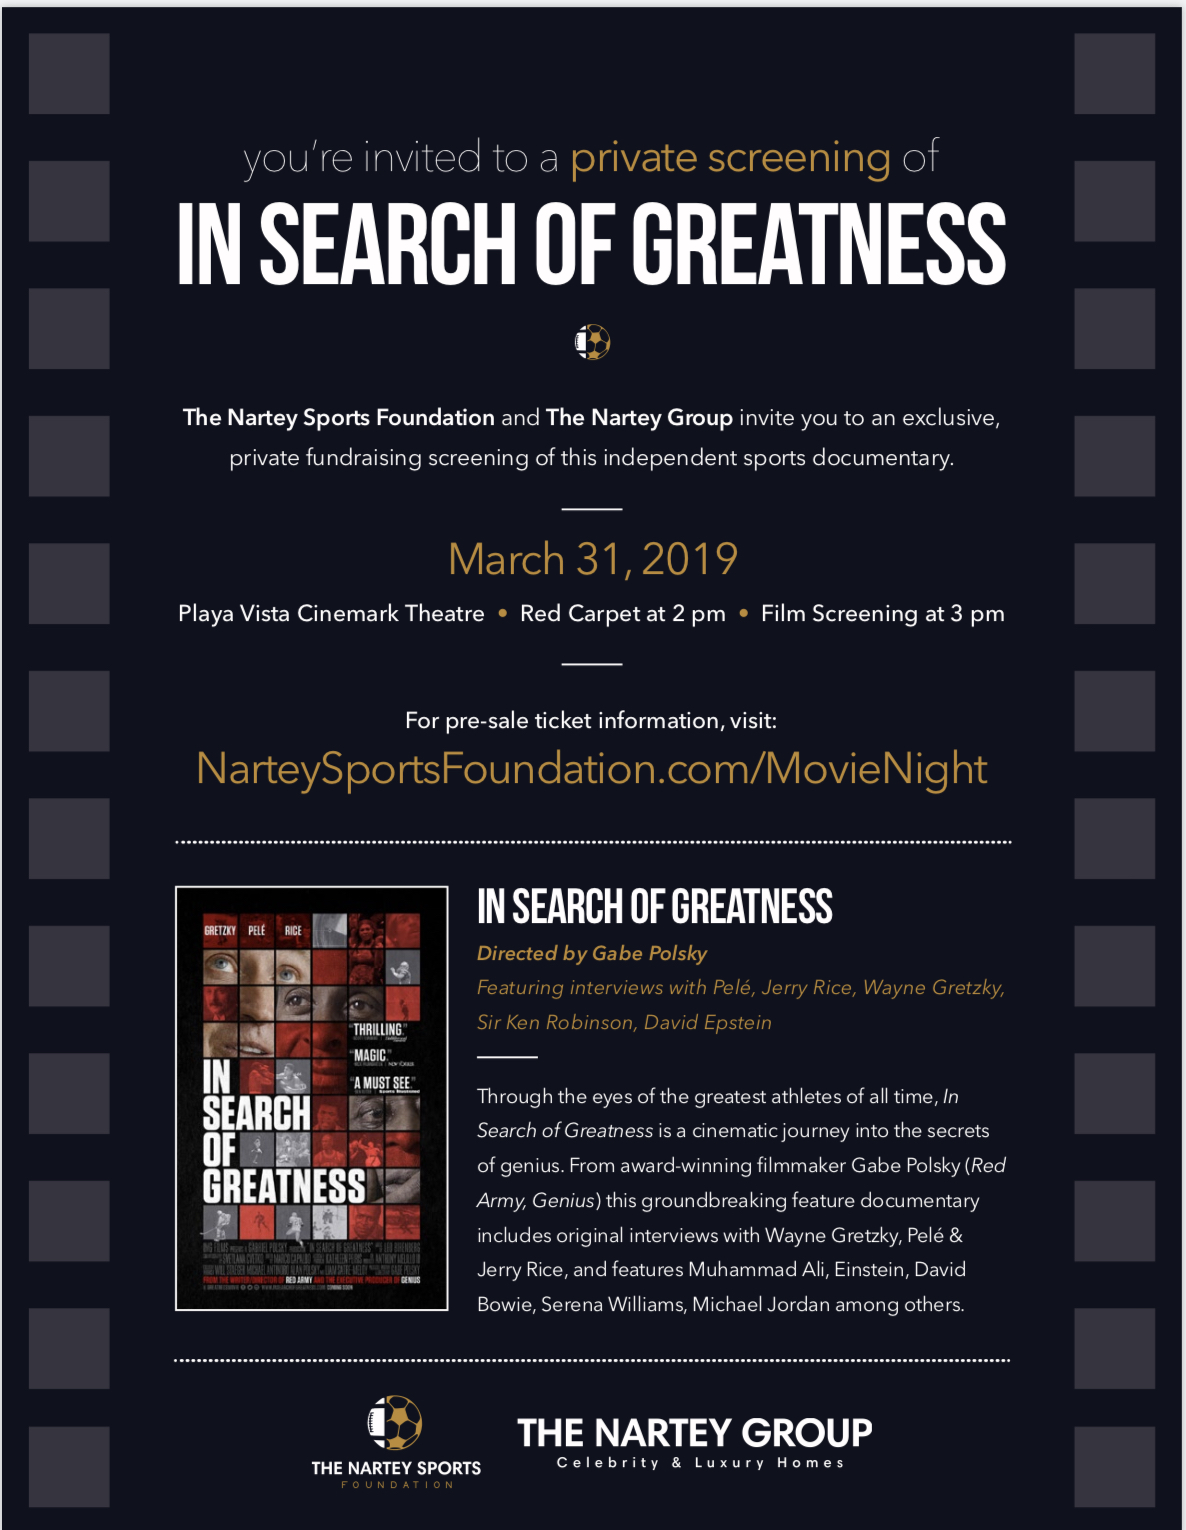 Enjoy a night of fun with a purpose at The Nartey Sports Foundation's charity film screening at Cinemark Playa Vista! - Purchase tickets now:https://www.eventbrite.com/e/in-search-of-greatness-charity-screening-tickets-58546017715